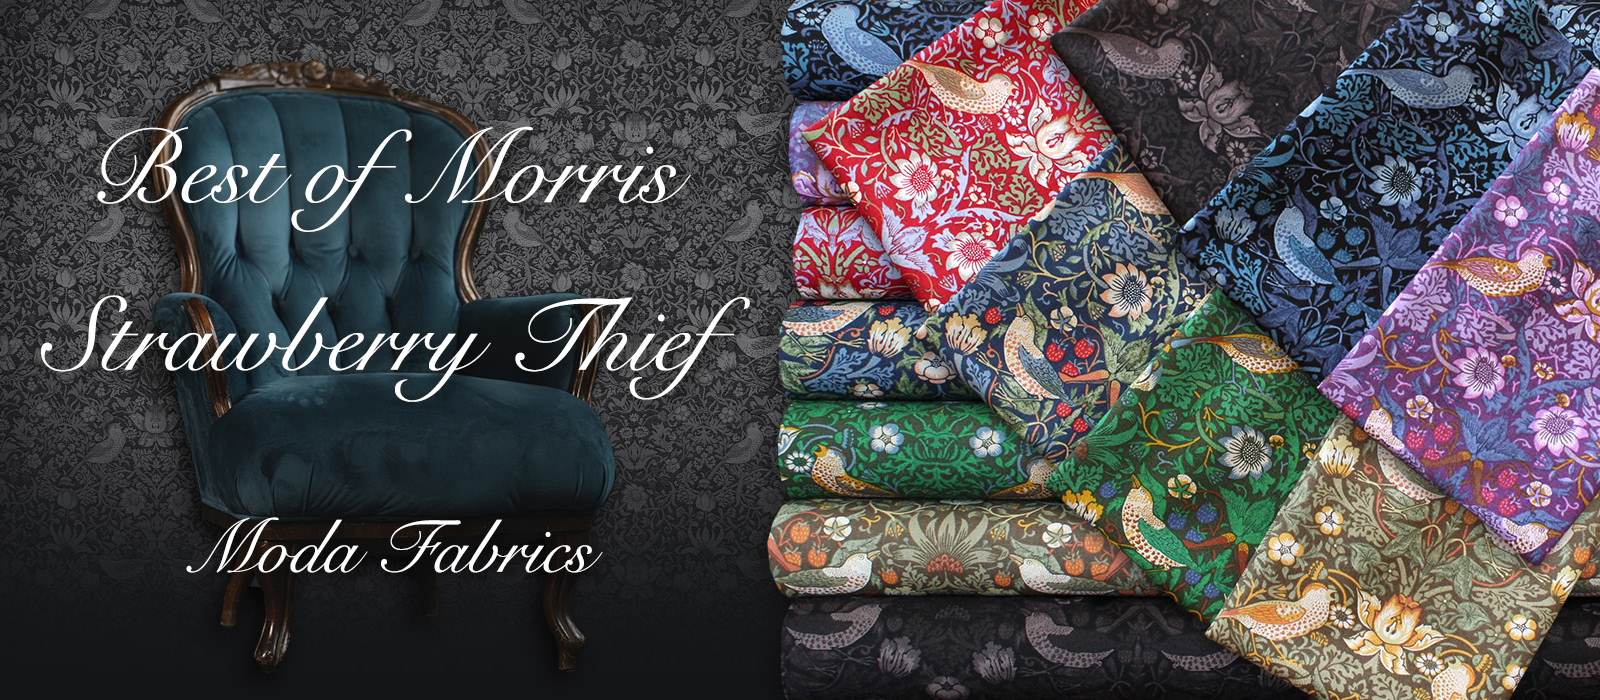 Moda Fabrics Best of Morris Collection Strawberry Thief